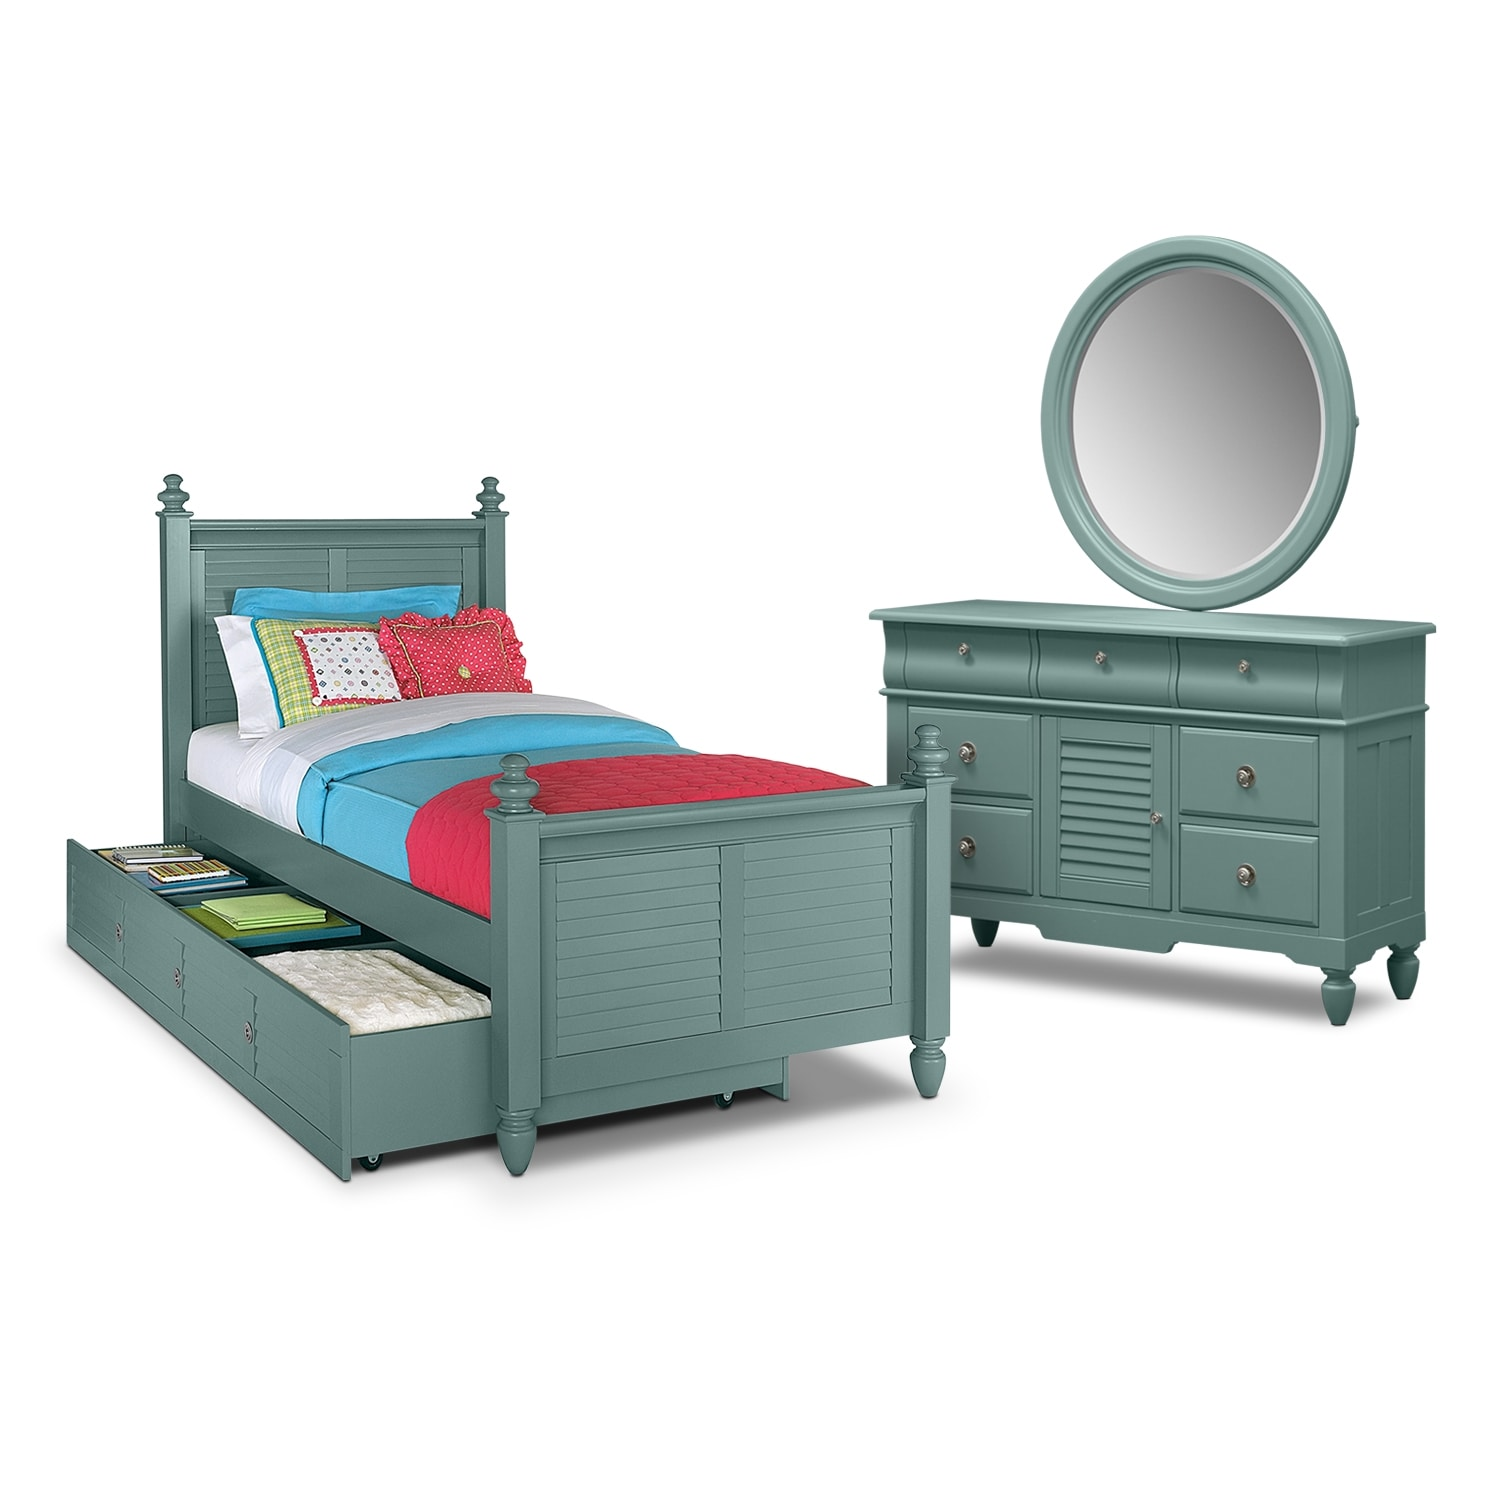 Seaside 6-Piece Twin Bedroom Set with Trundle - Blue